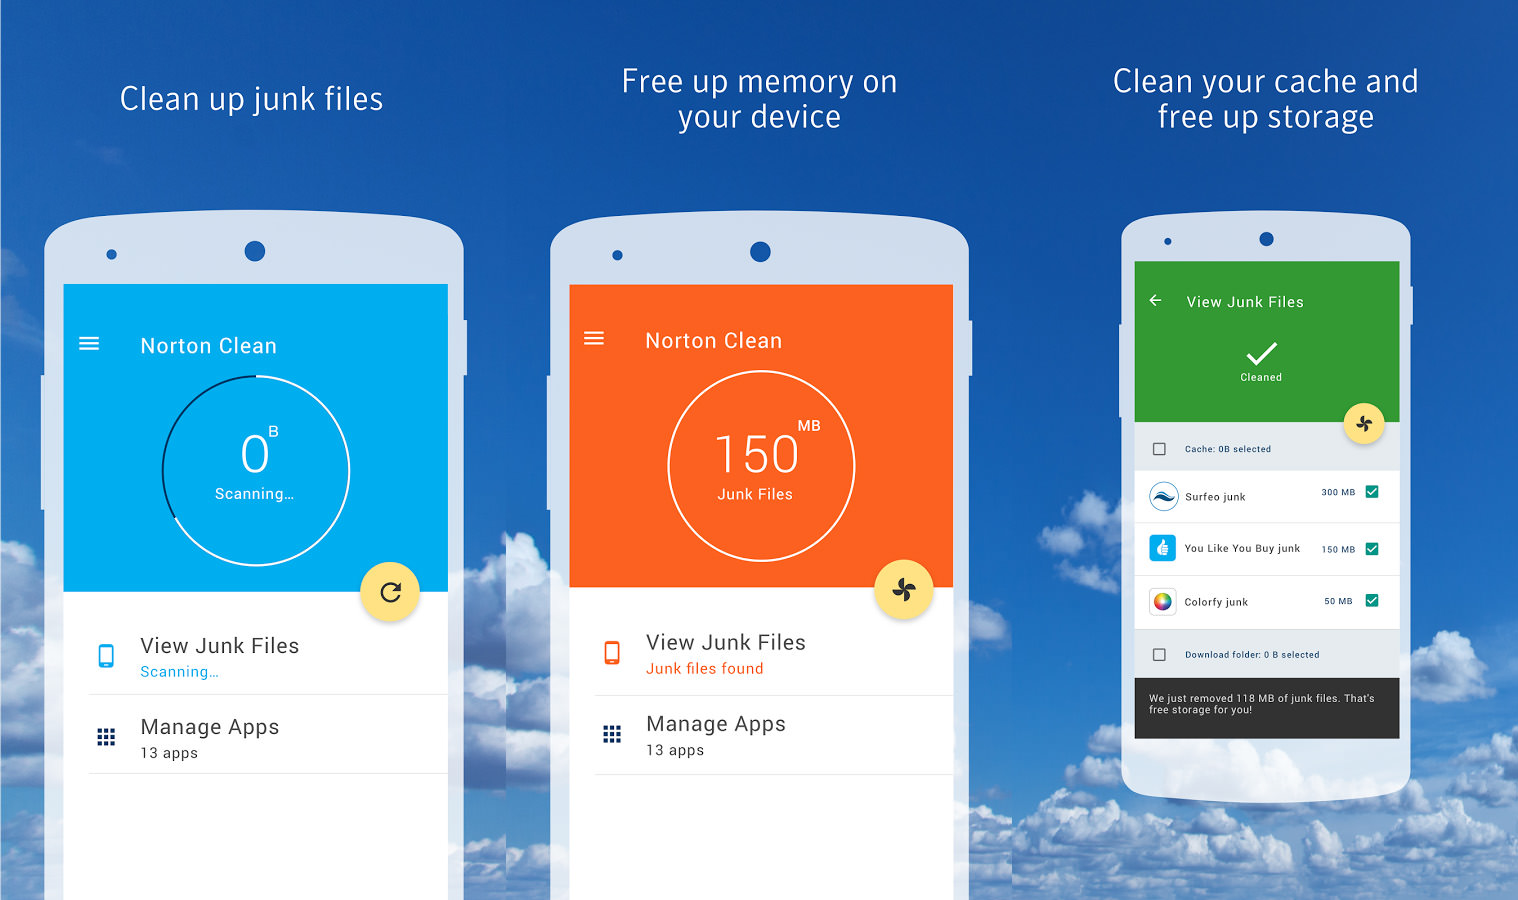 5 Free Apps To Clean Up Android And Free Up Storage Space